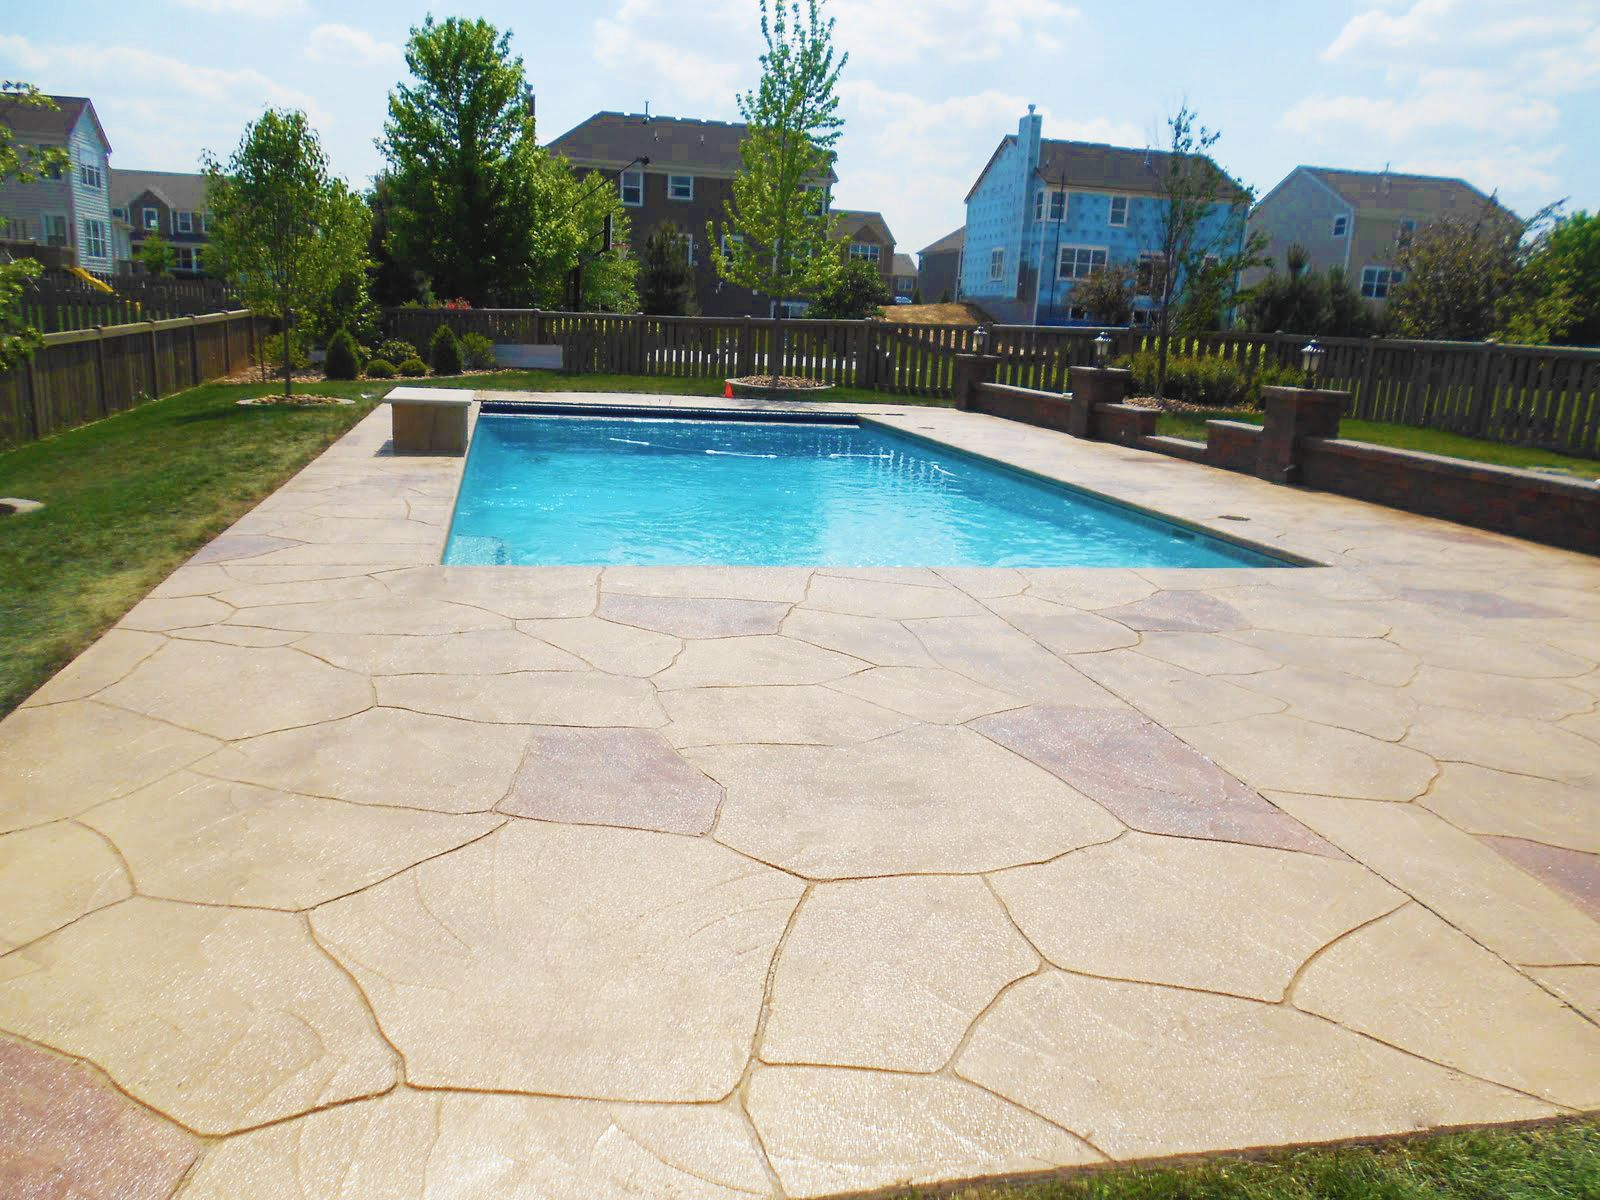 Resurfacing your pool deck is an all around better option than a